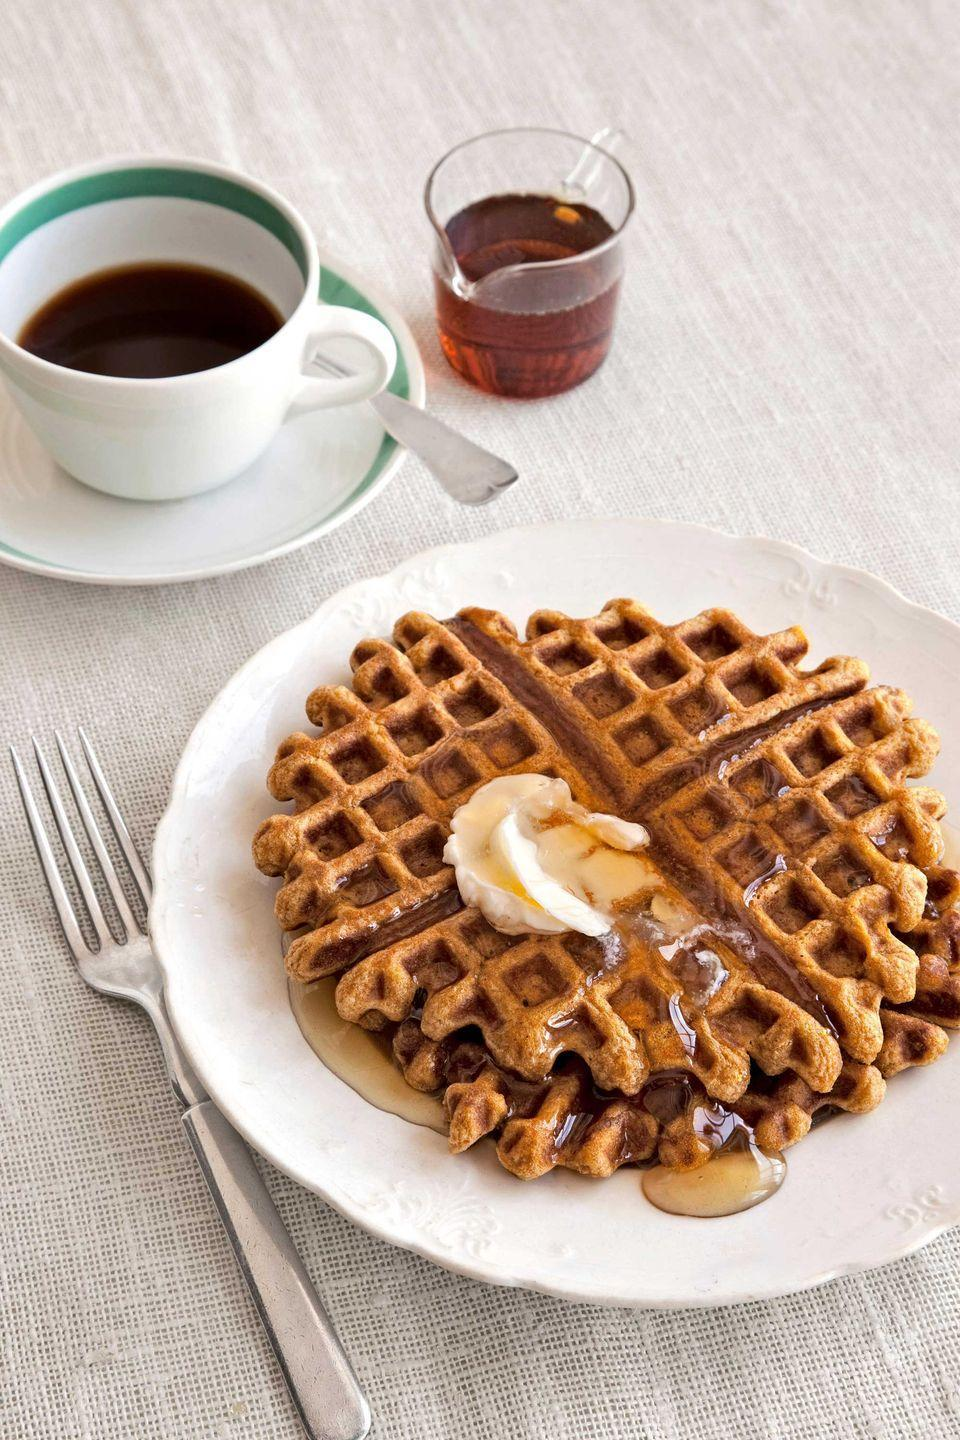 """<p>The unexpected punch of crystallized ginger gives tender pumpkin waffles a grown-up twist. </p><p><strong><a href=""""https://www.countryliving.com/food-drinks/recipes/a2992/pumpkin-ginger-waffles-recipe/"""" rel=""""nofollow noopener"""" target=""""_blank"""" data-ylk=""""slk:Get the recipe"""" class=""""link rapid-noclick-resp"""">Get the recipe</a>.</strong></p>"""